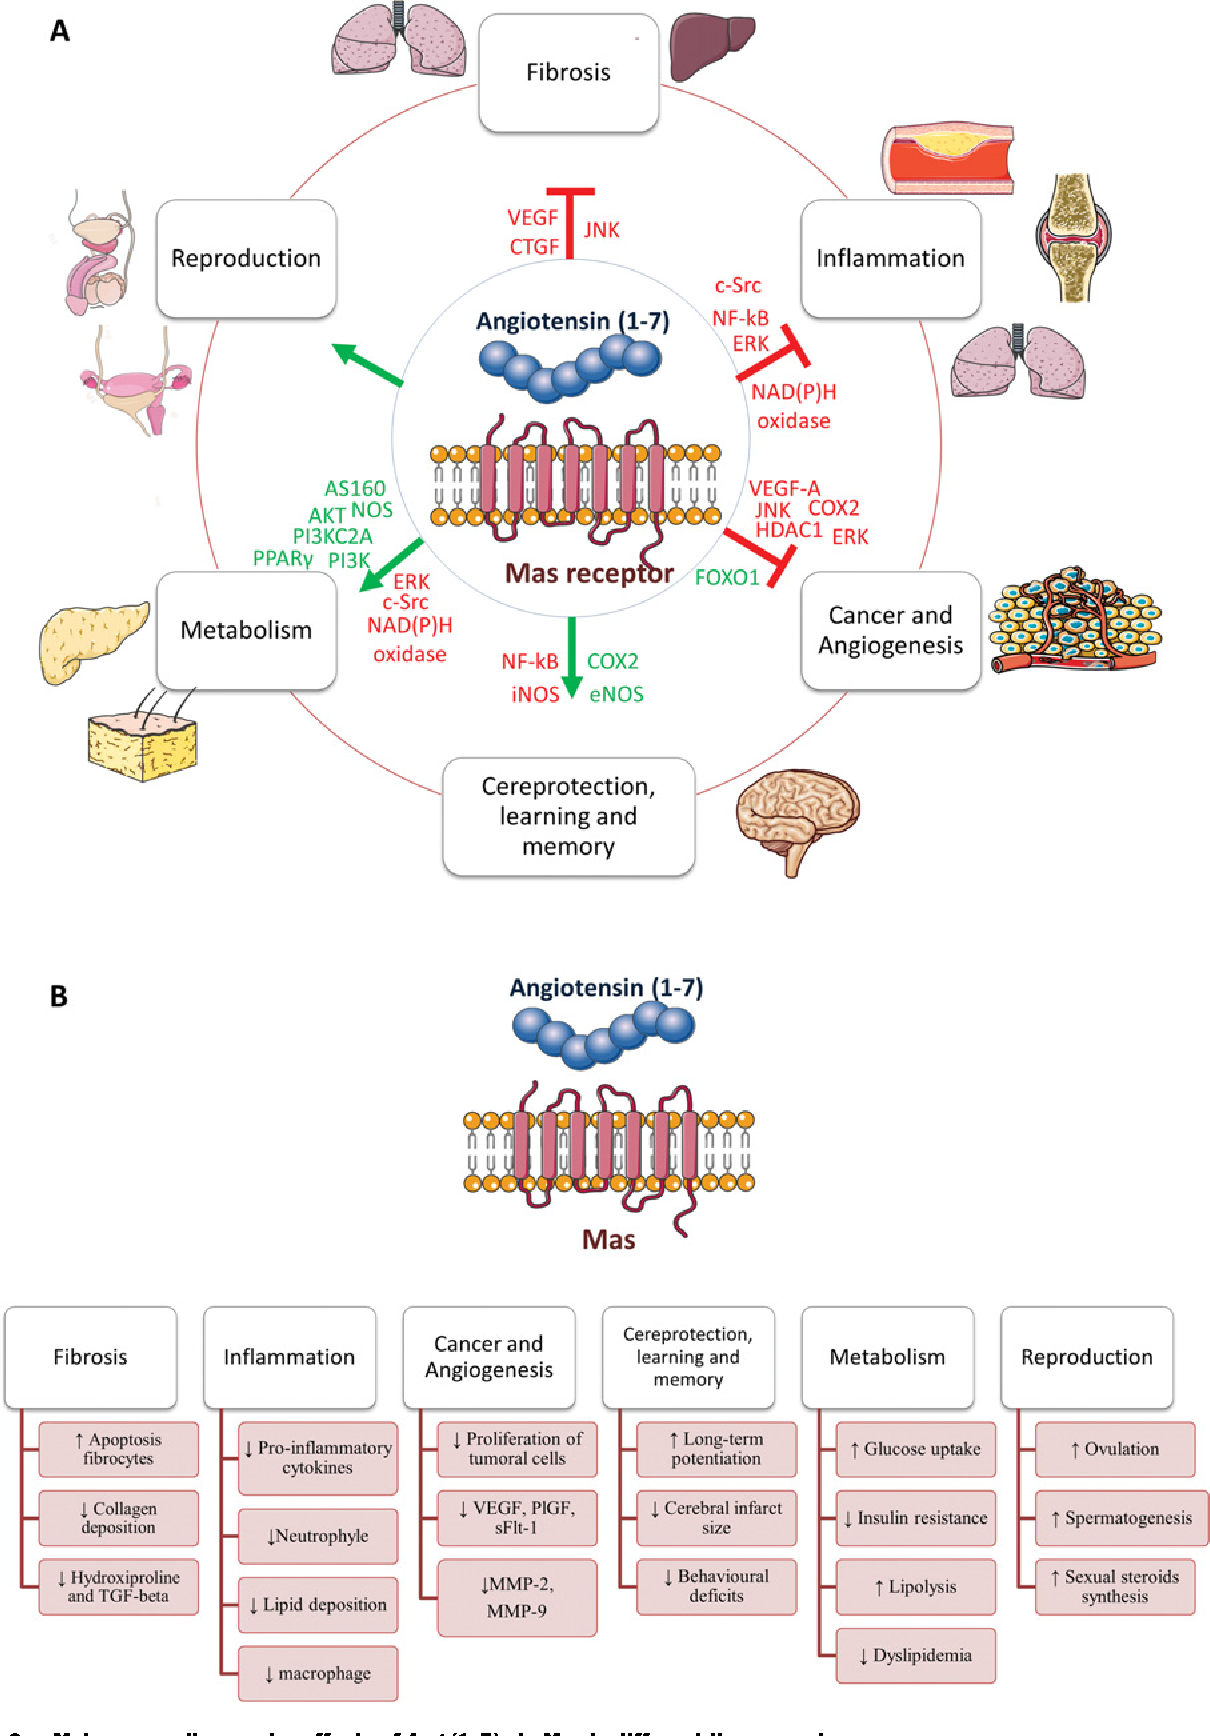 Figure 2 Main non-cardiovascular effects of Ang-(1–7) via Mas in different tissues and processes (A) Signalling molecules involved in the action of Ang-(1–7). The molecules in green and red indicate activation or inhibition by Ang-(1–7)/Mas respectively. The green arrows indicate activation or positive effects, and the red lines indicate inhibition of the process. (B) The main non-cardiovascular consequences of Ang-(1–7) on each process.